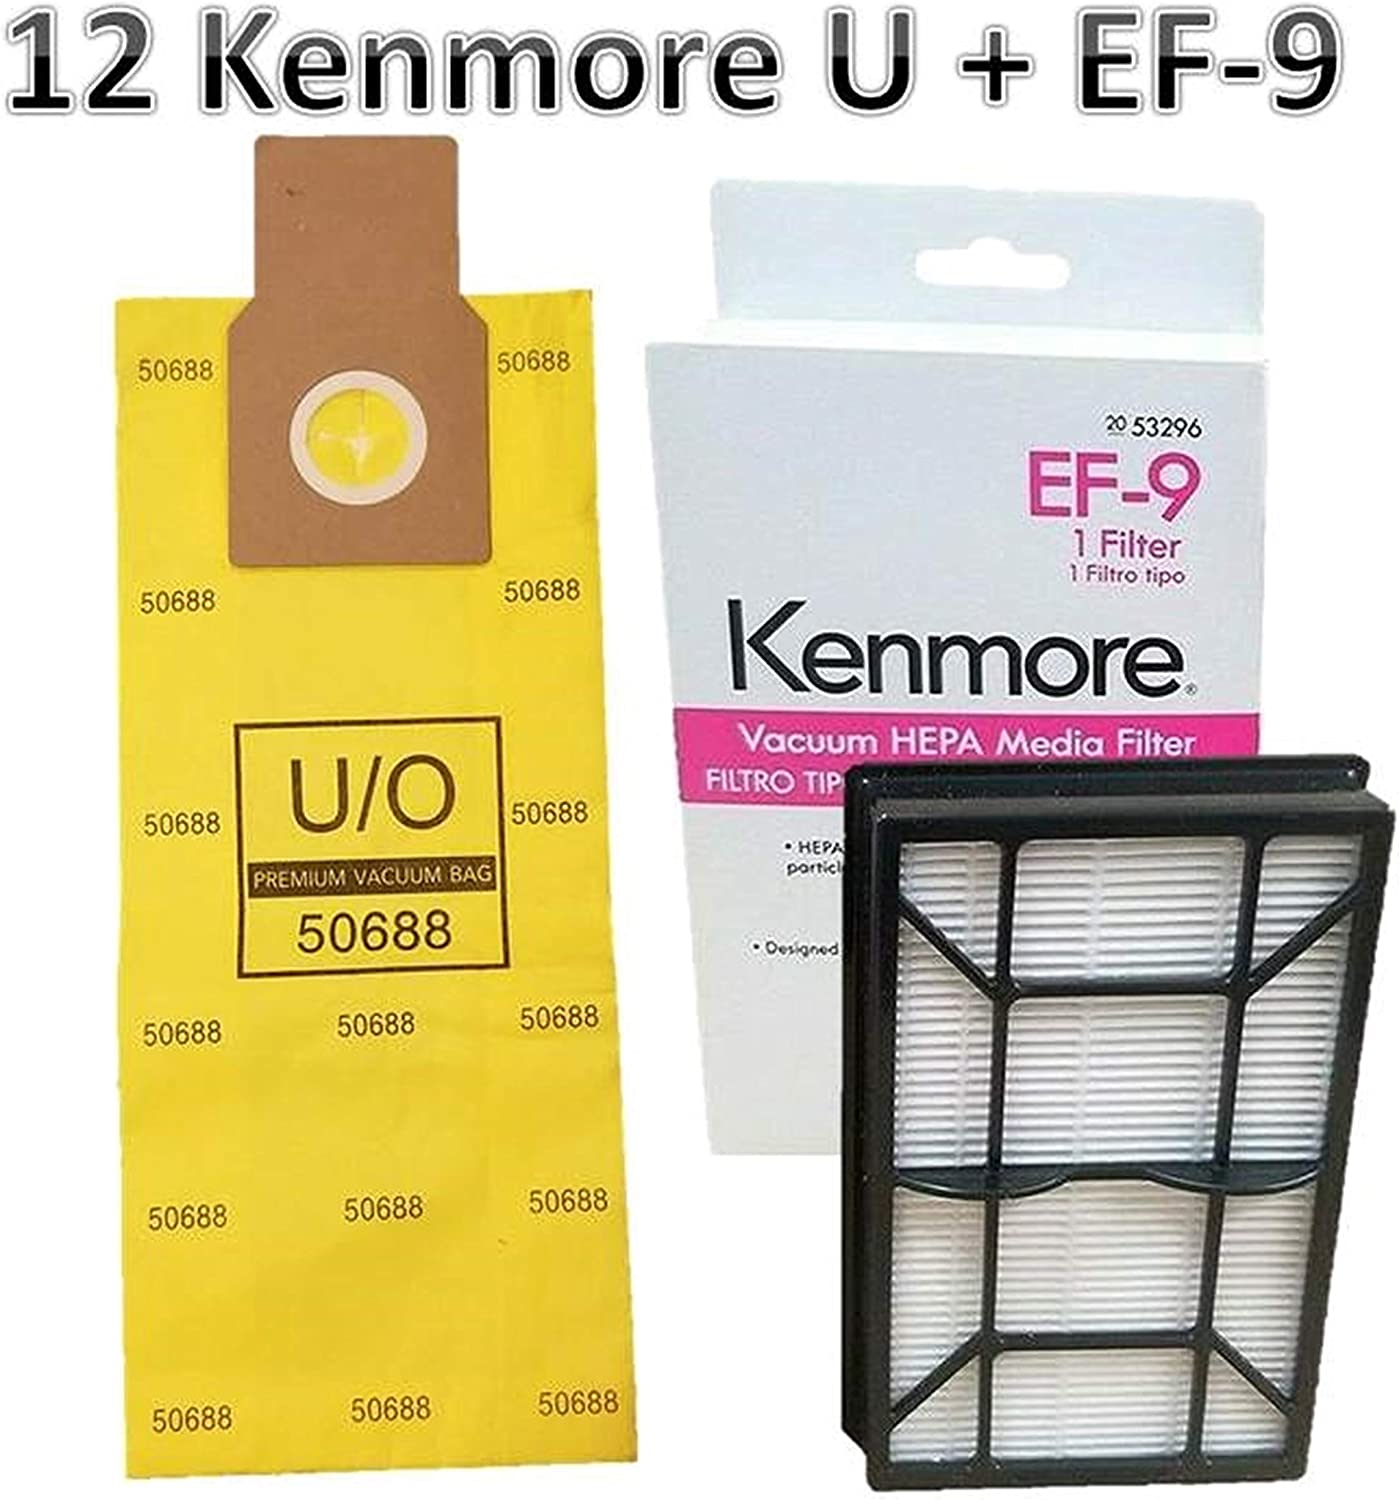 Casa Vacuums Replacement Kit for Kenmore Elite 31150 BU1018. 12 Style U Allergen Bags 50688 + 1 Sears Kenmore EF-9 Filter 53296. Kenmore Elite 31150 Bag and Filter Supply Kit.